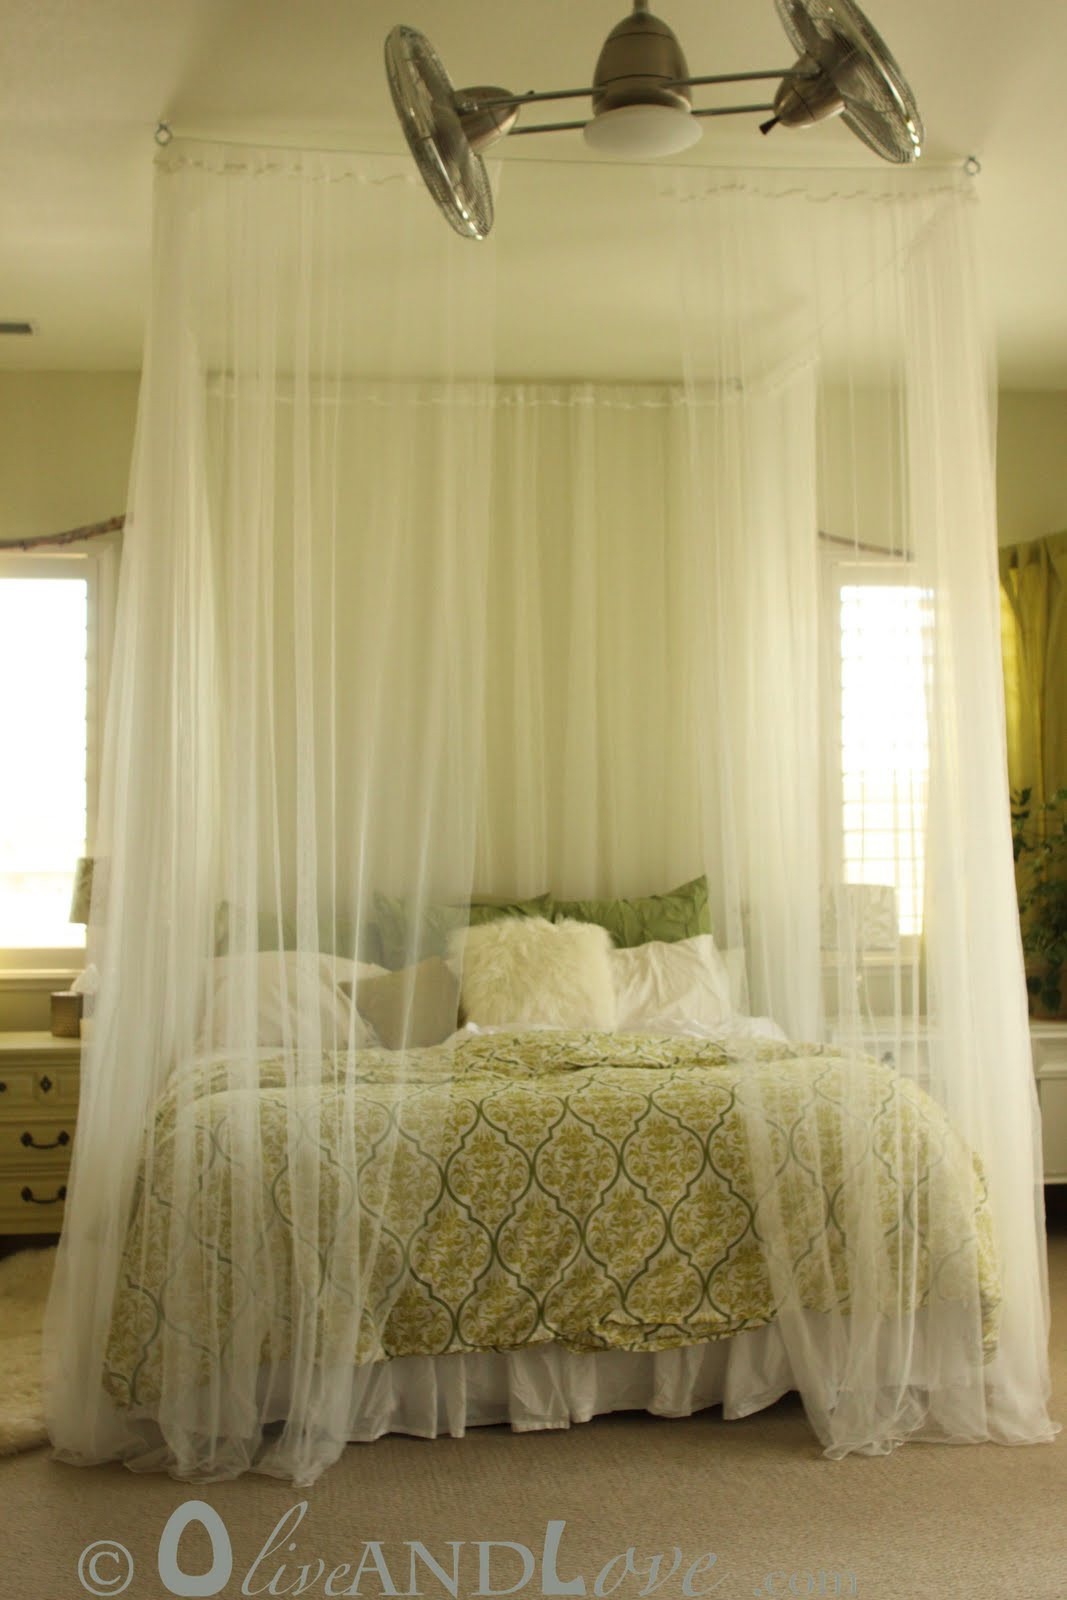 Best ideas about DIY Canopy Bed Curtains . Save or Pin Ceiling mounted bed canopy consisting of eyebolts turn Now.